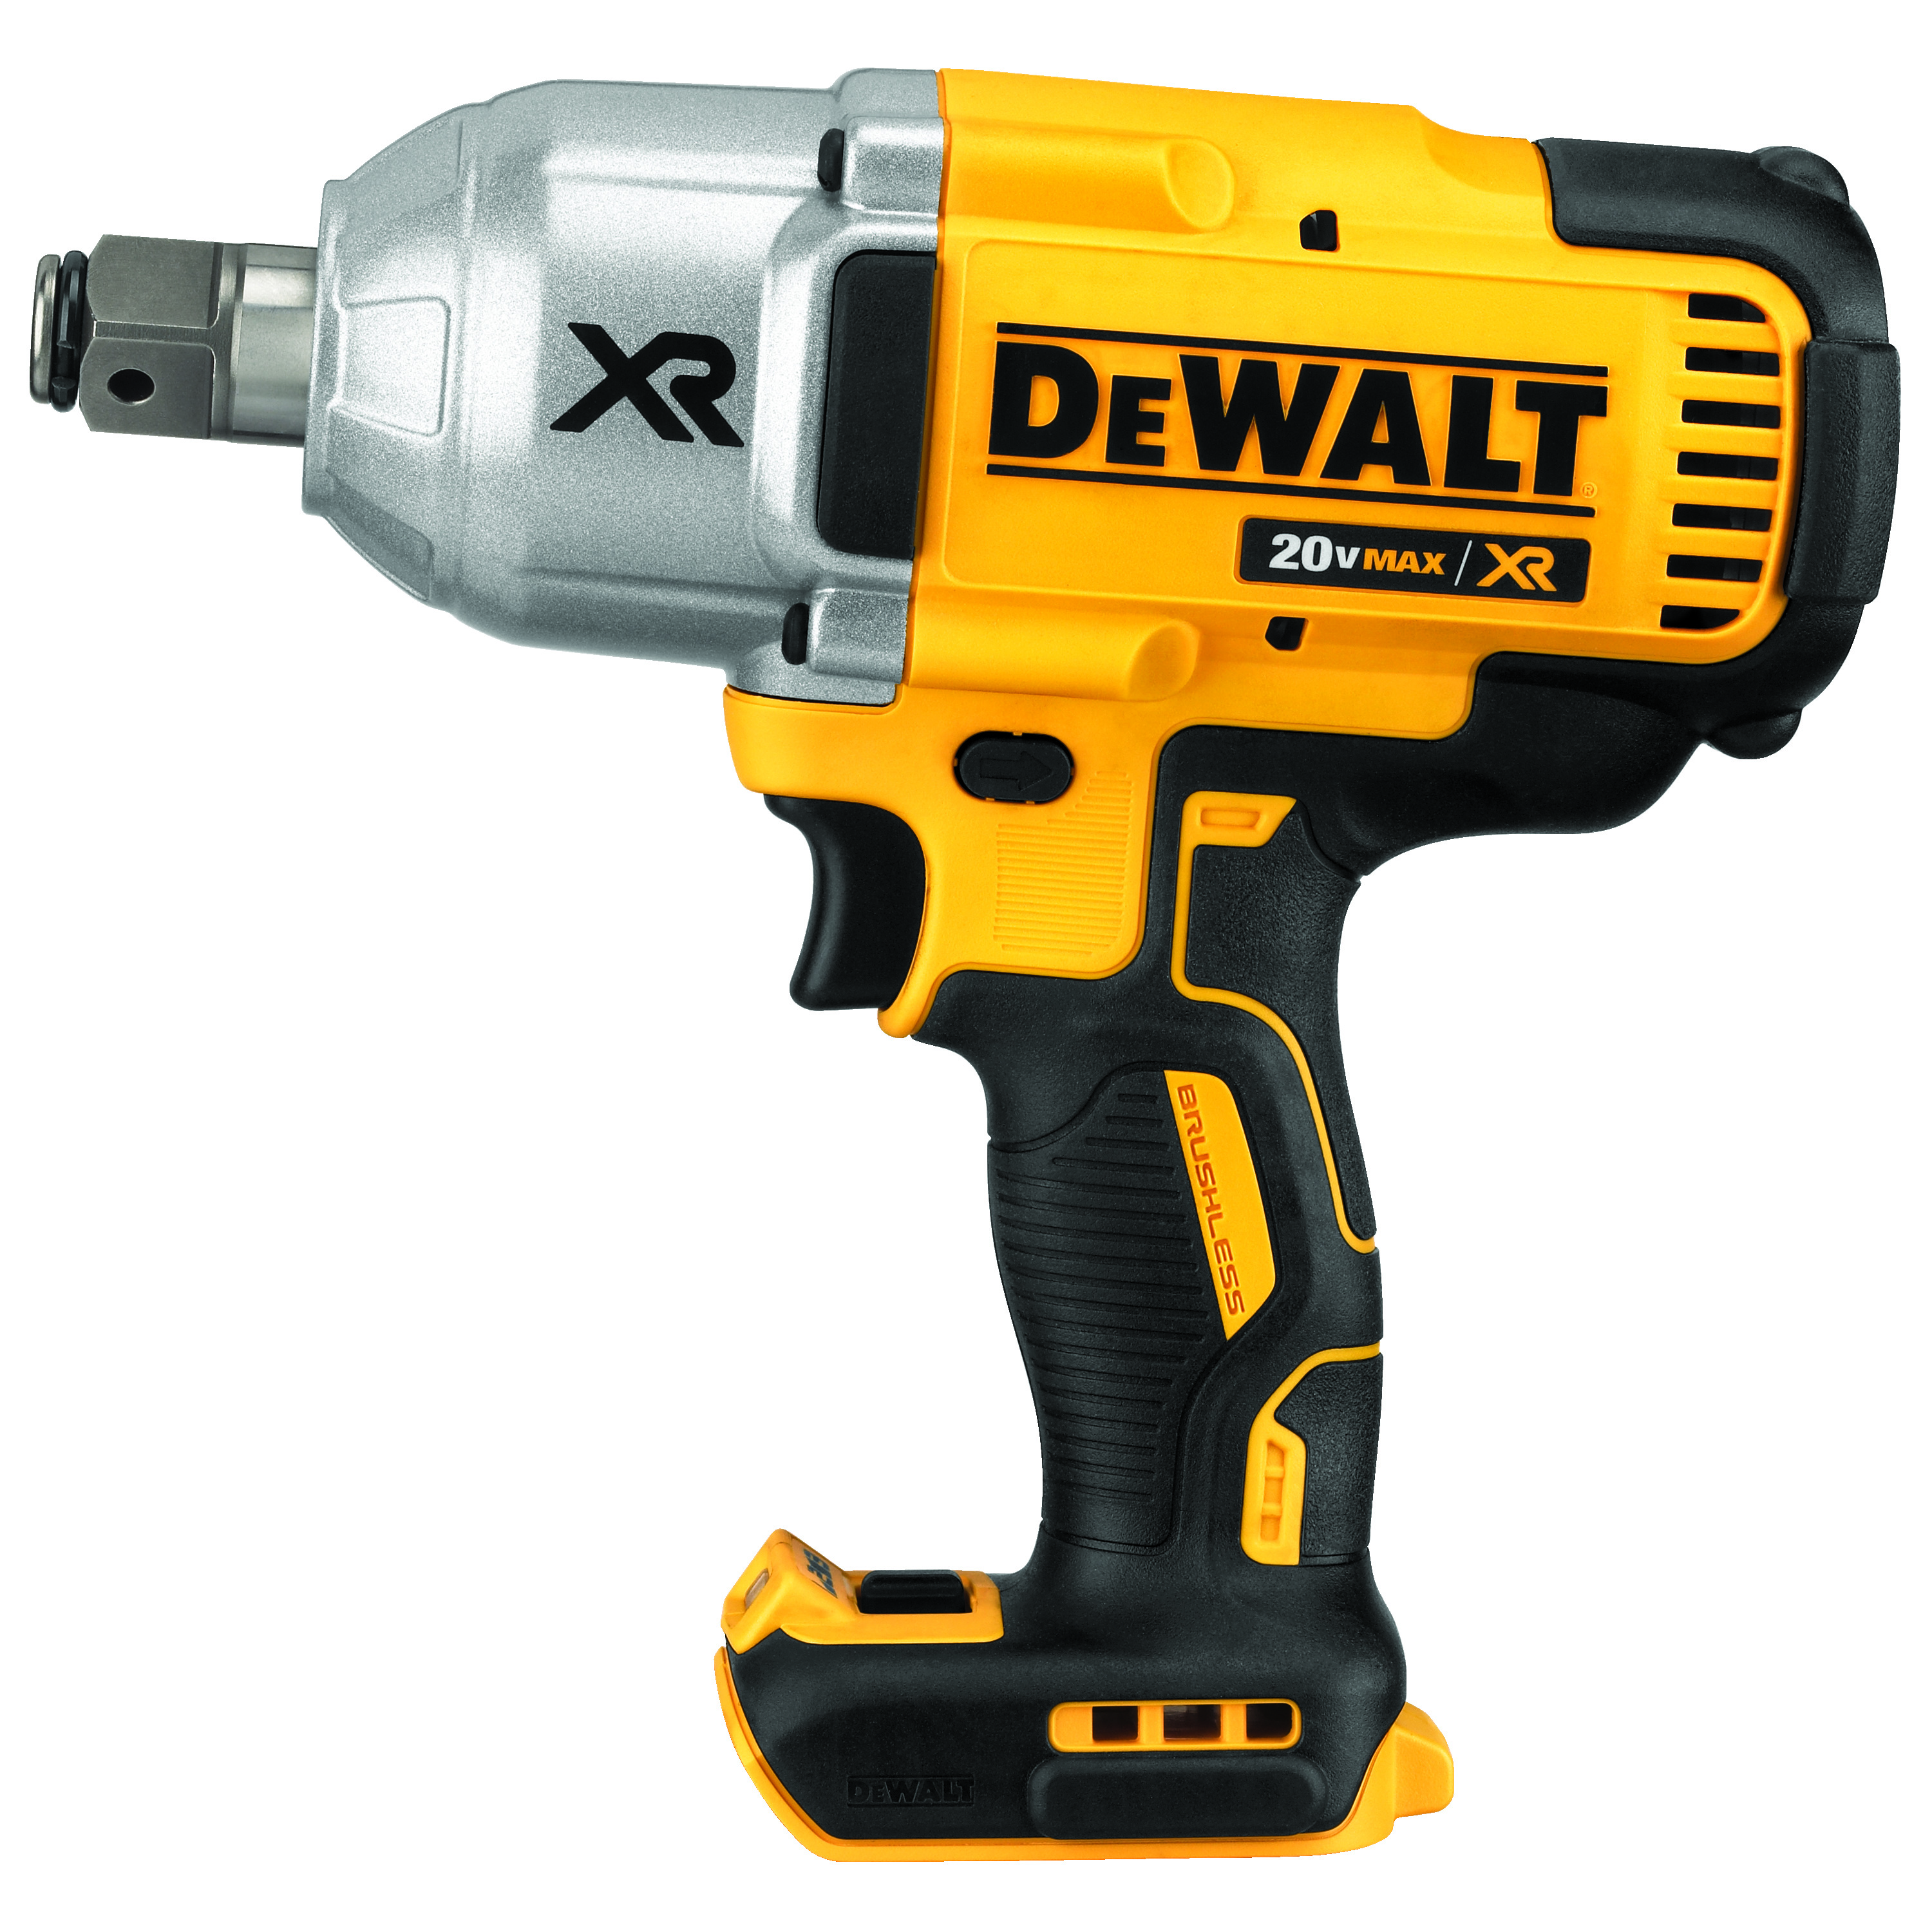 DeWALT® 20V MAX* MATRIX™ DCF897B Compact Cordless Impact Wrench Kit, 3/4 in Straight Drive, 700 ft-lb Torque, 20 VDC, 8-13/16 in OAL